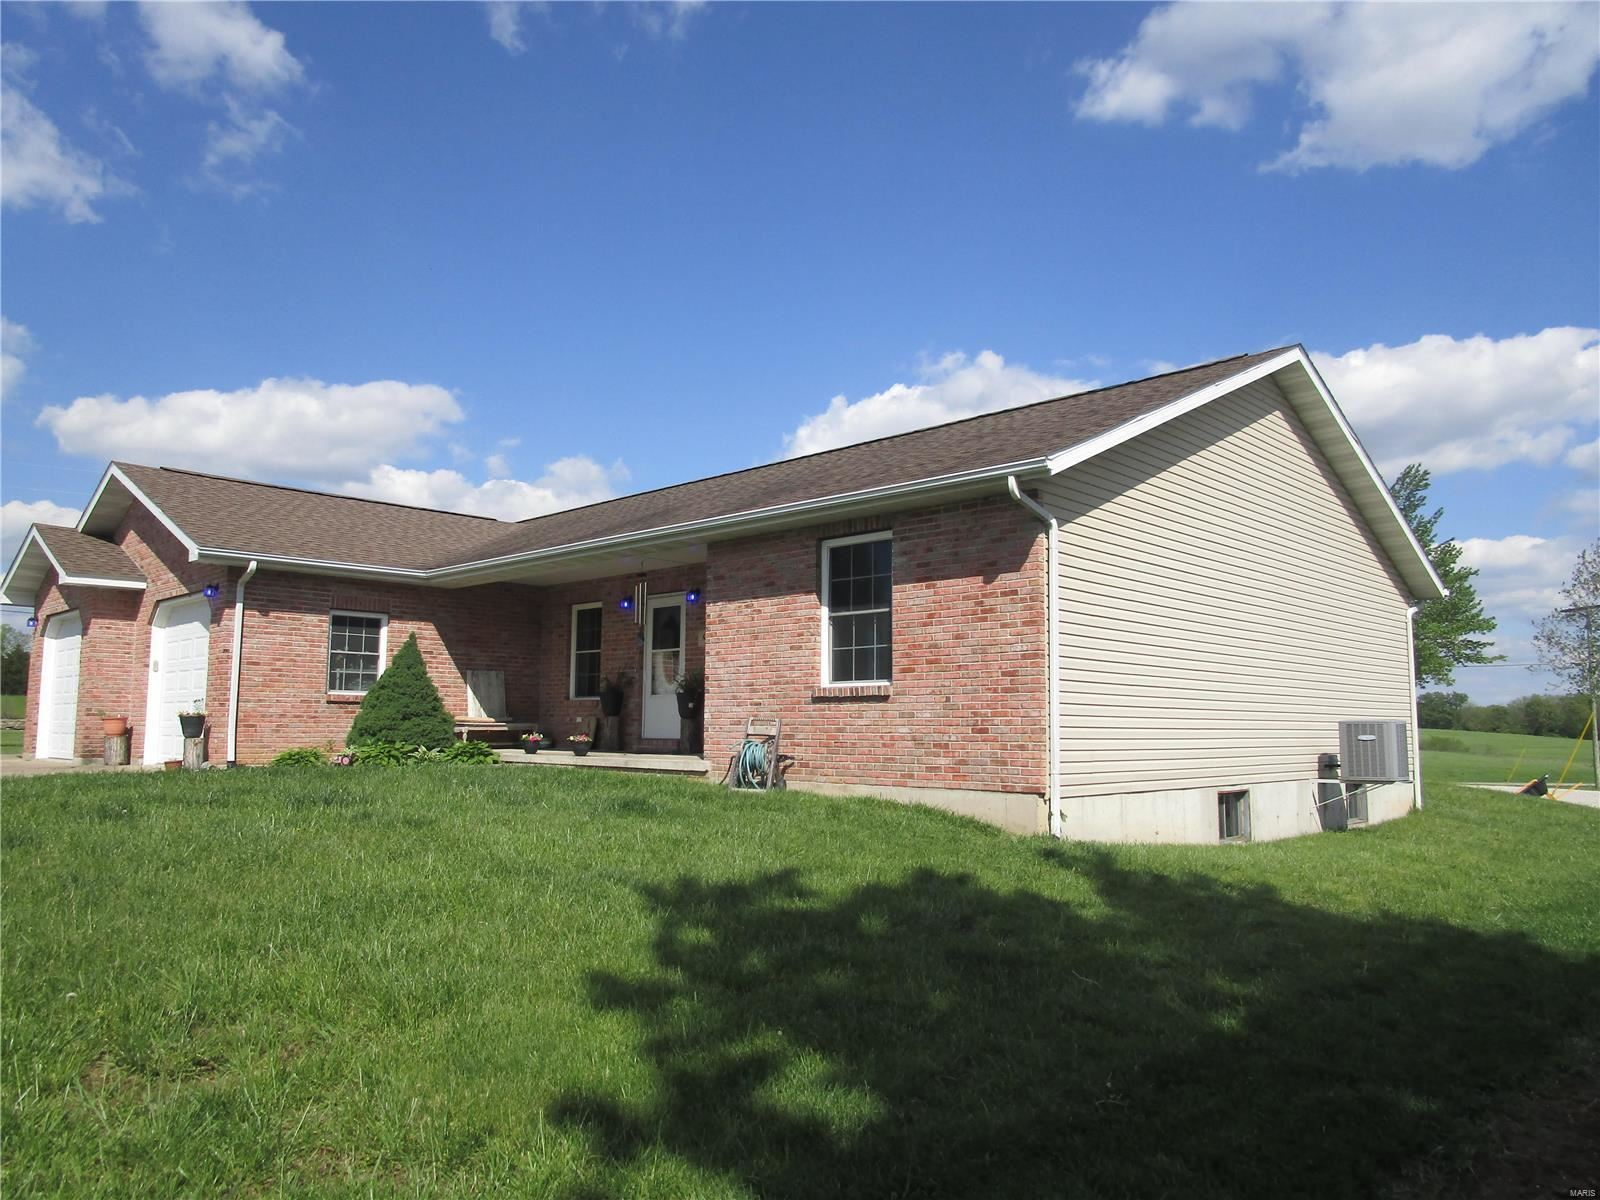 Photo of 9 Rambling Hills, Perryville, MO 63775 (MLS # 21029981)